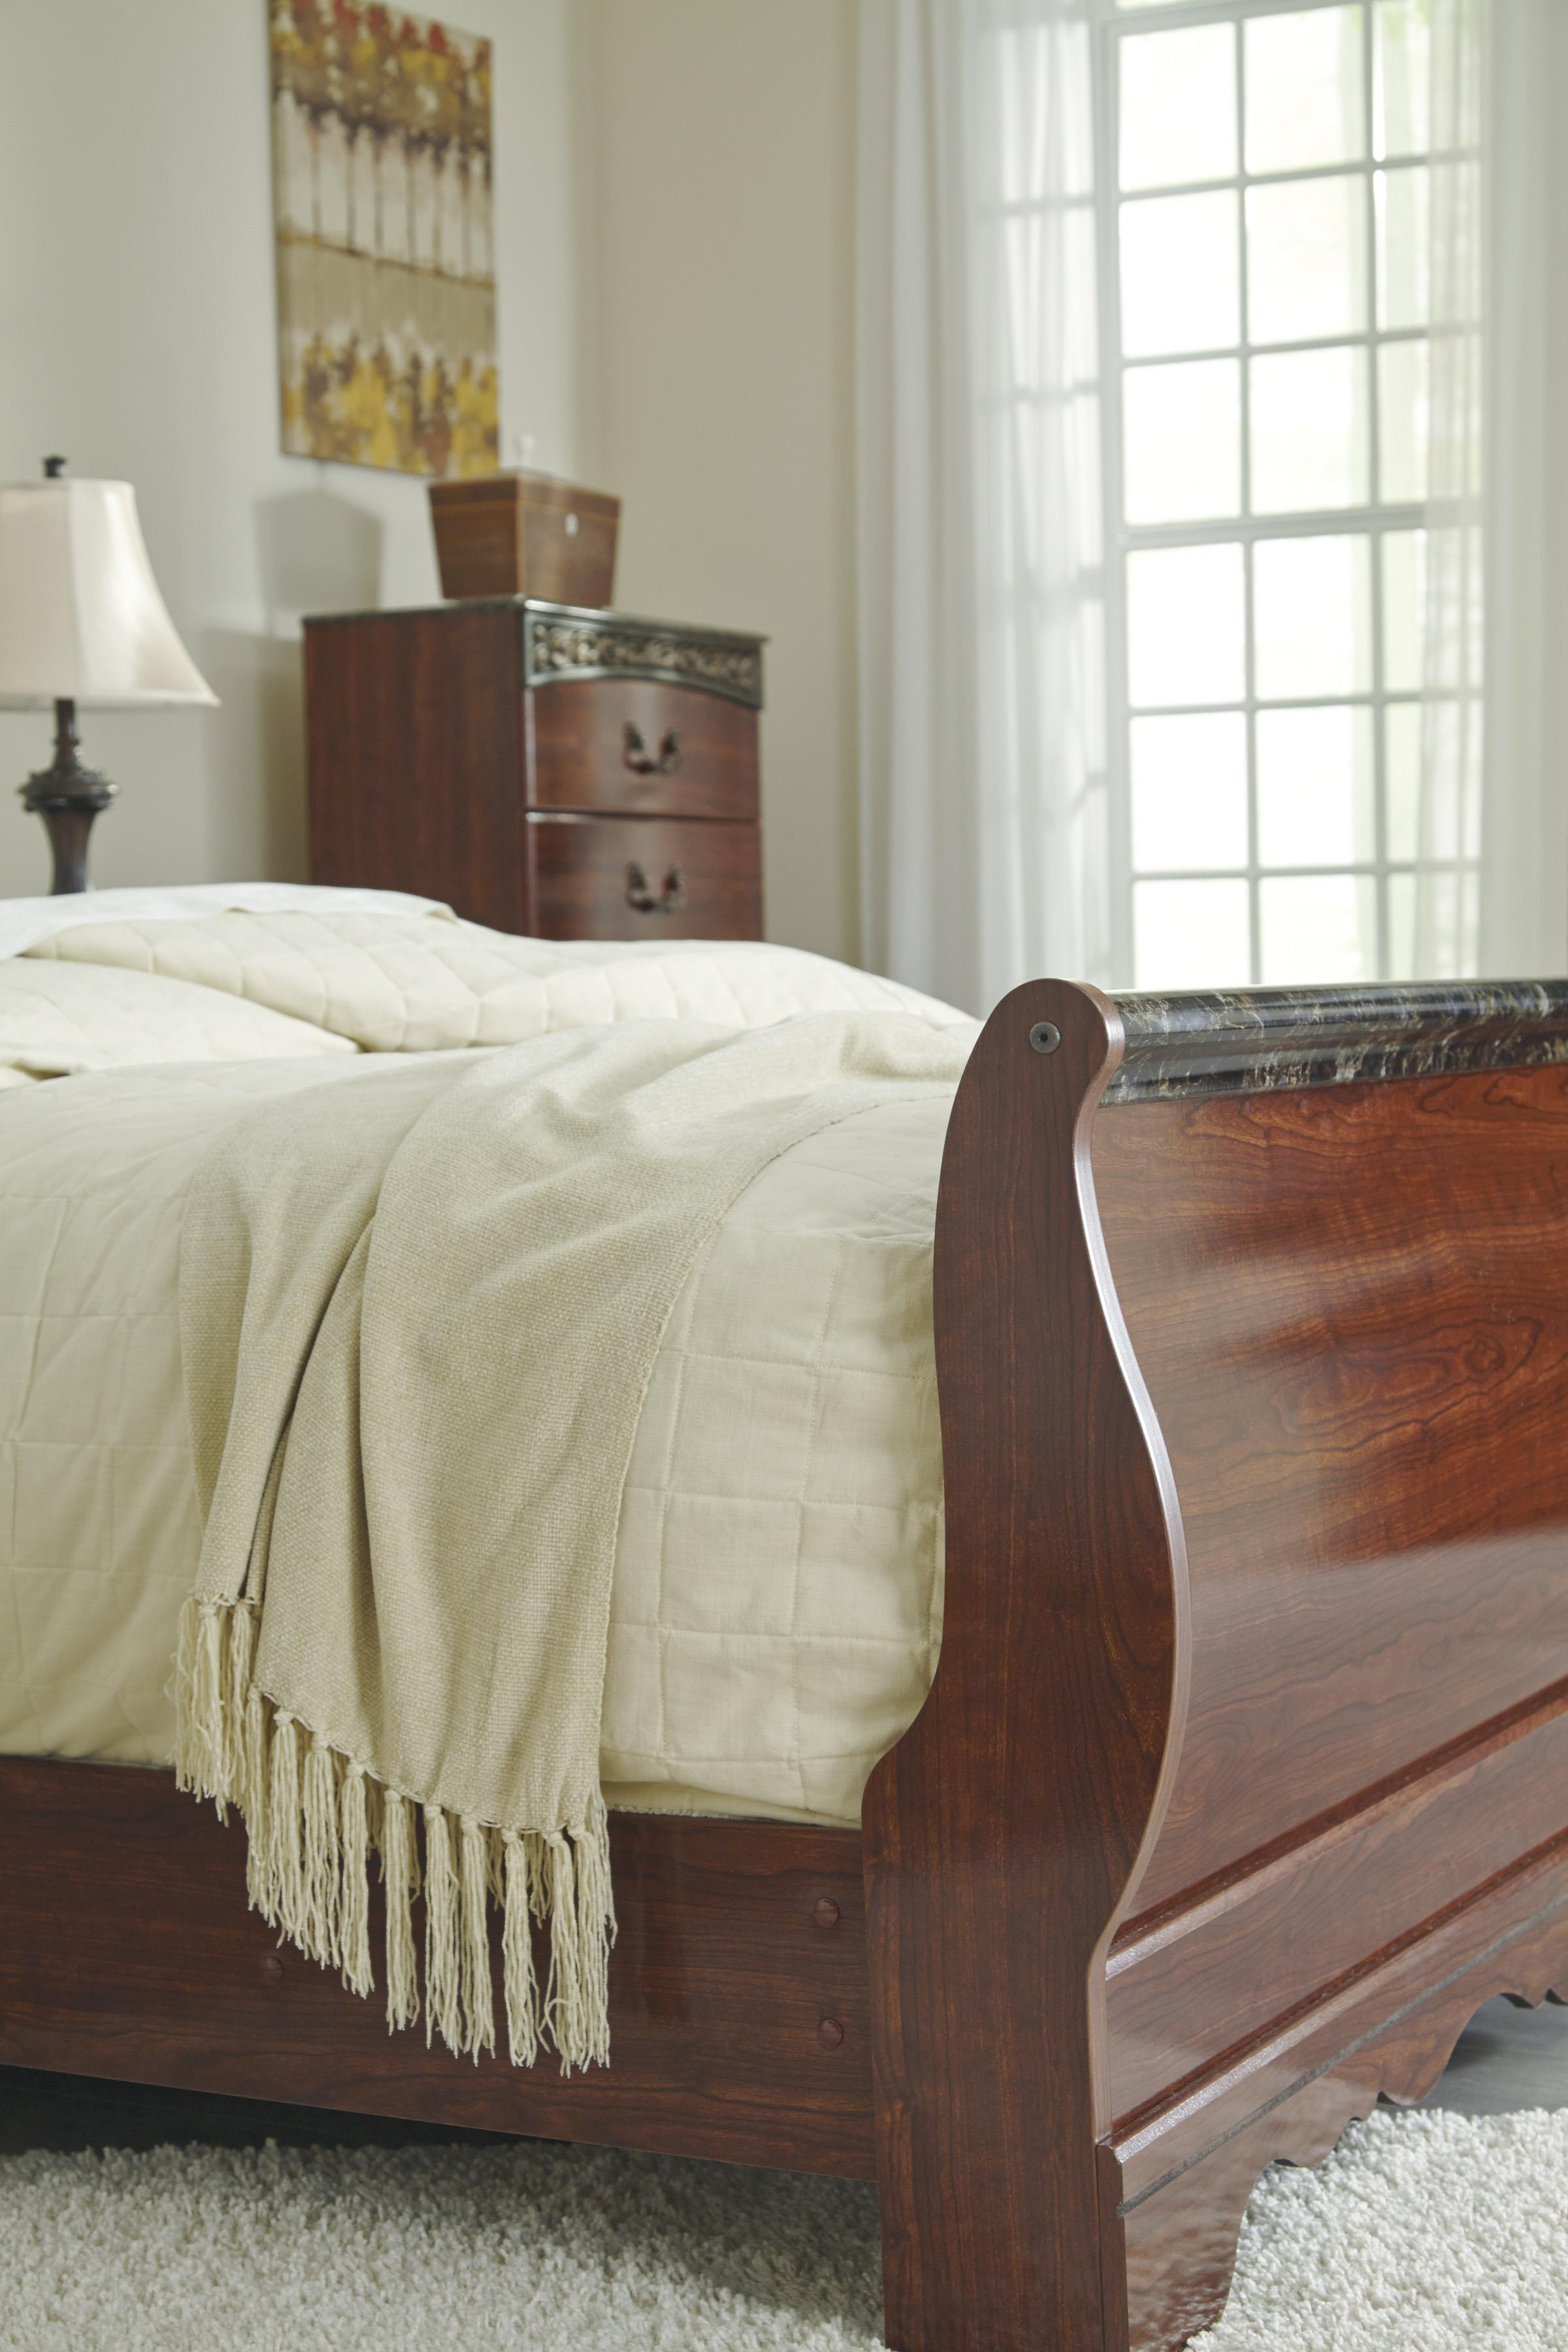 Signature Design By Ashley Fairbrooks Estate Queen Sleigh Bed With Scrolled Insert And Faux